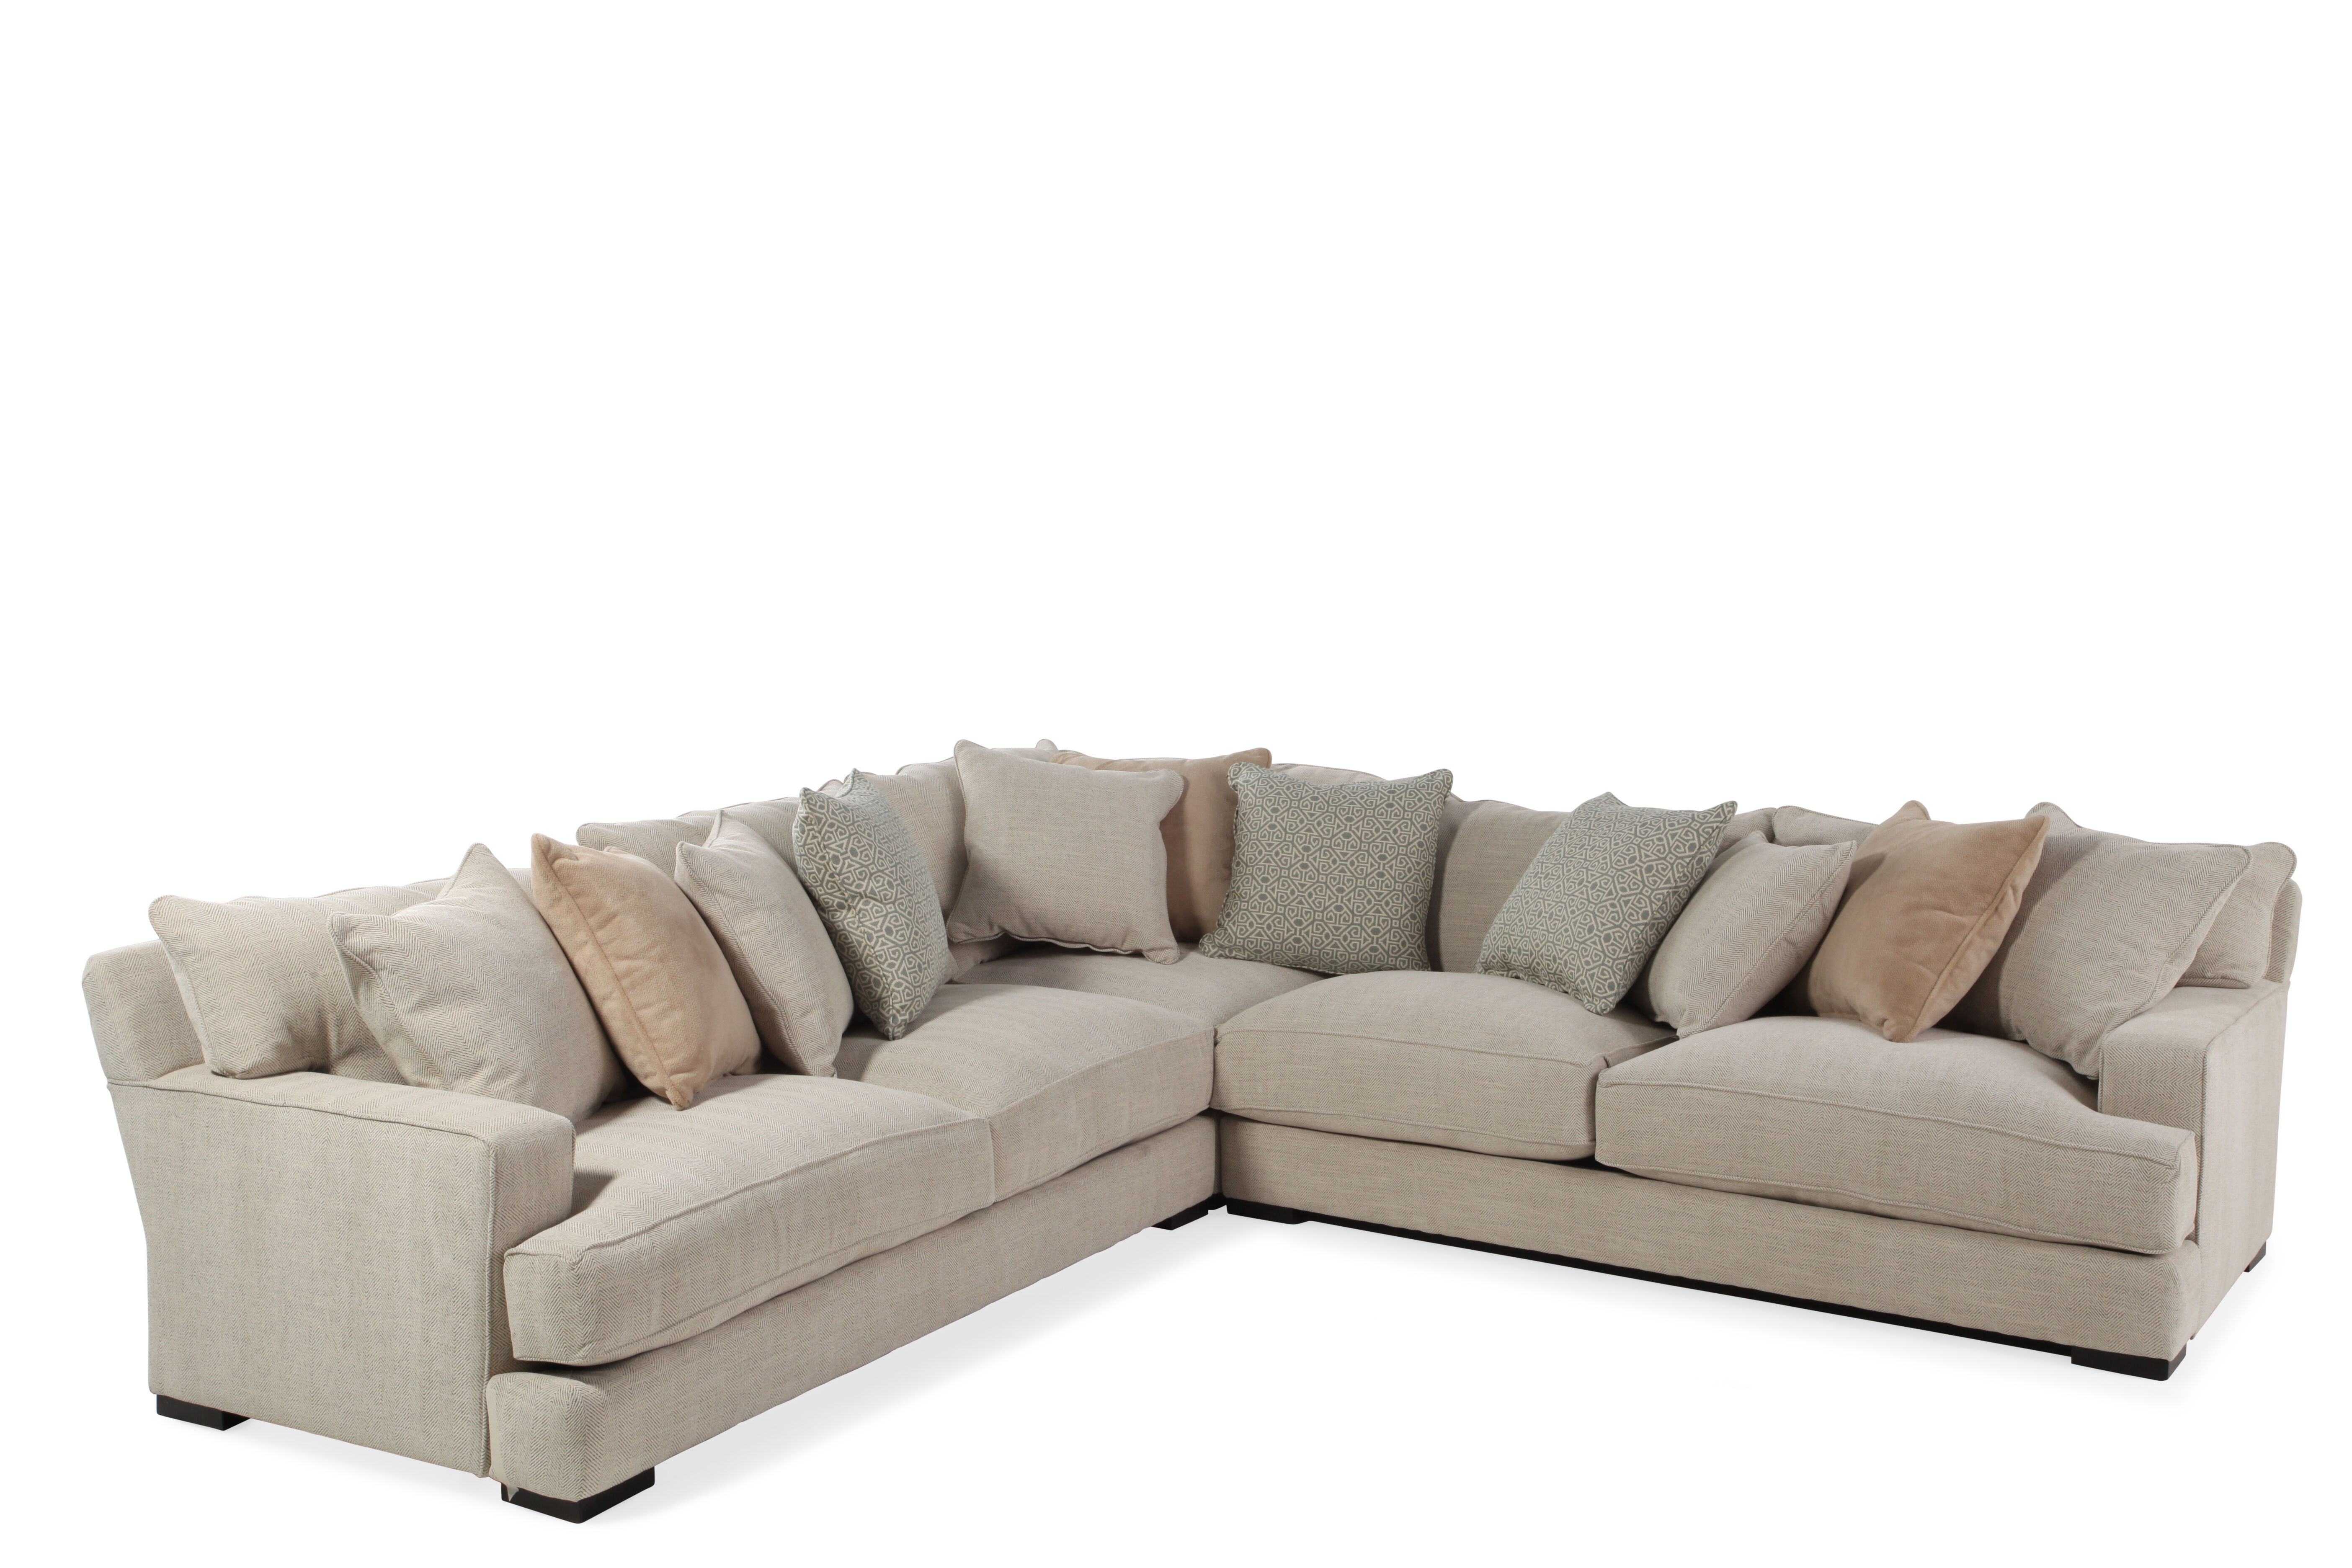 Jonathan Louis Matthew Three-Piece Sectional  sc 1 st  Mathis Brothers : jonathan louis noah sectional - Sectionals, Sofas & Couches